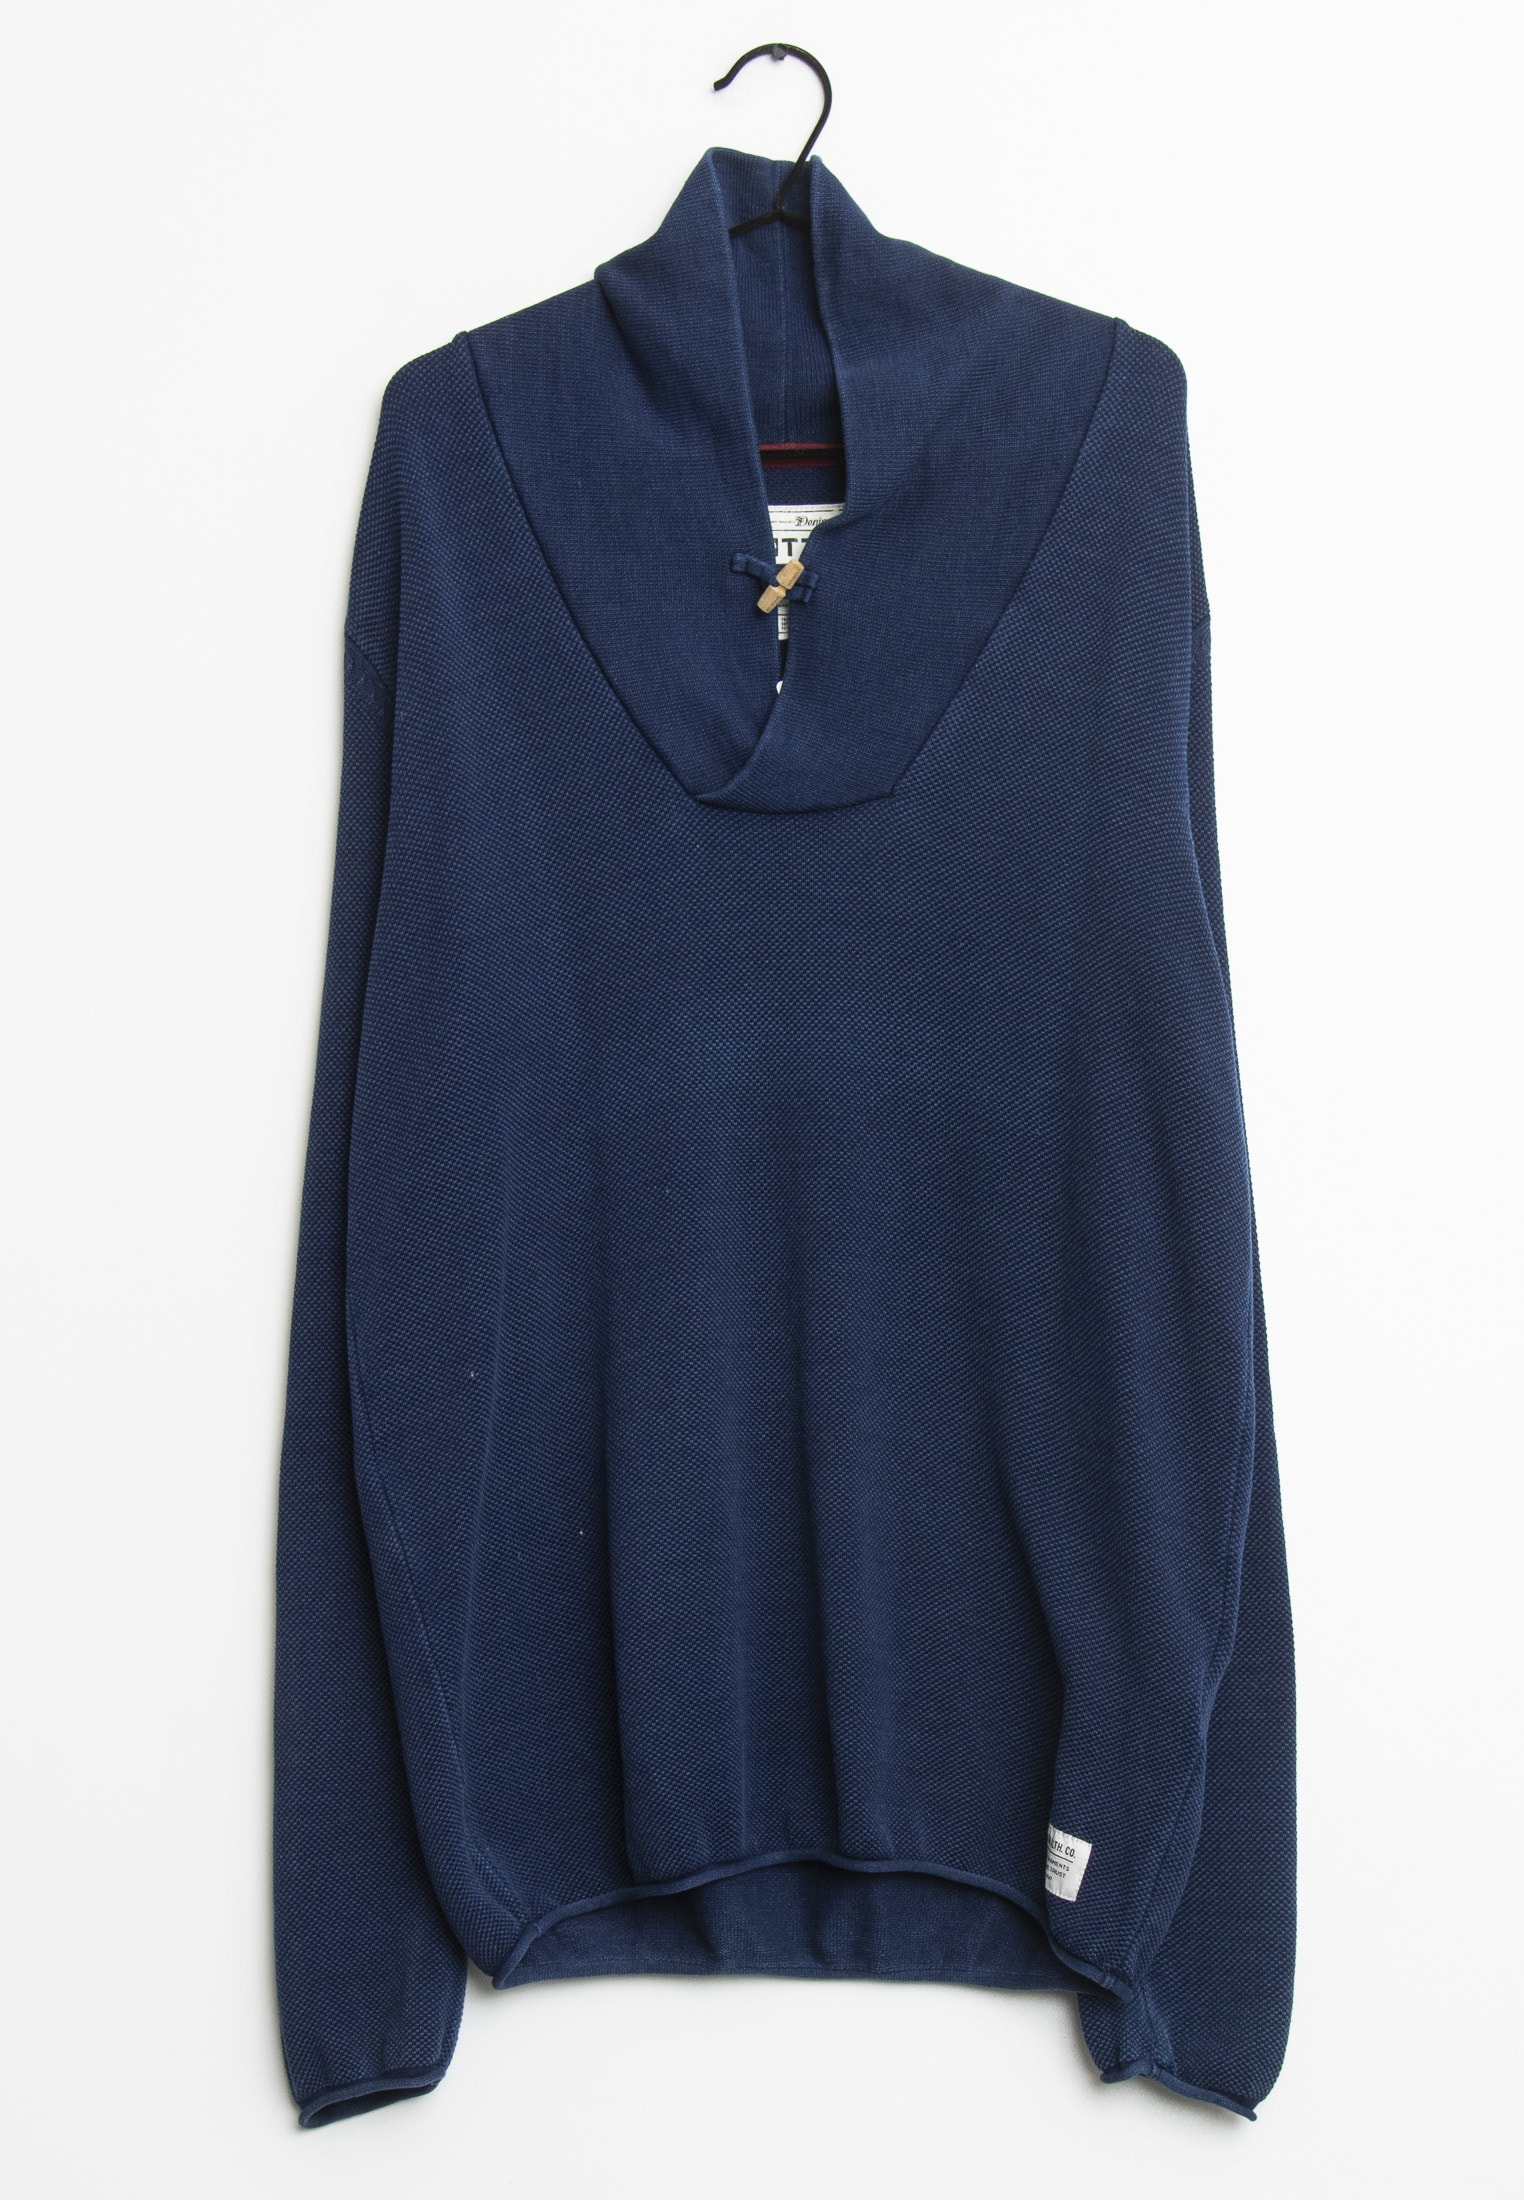 TOM TAILOR DENIM Strickpullover Blau Gr.XL